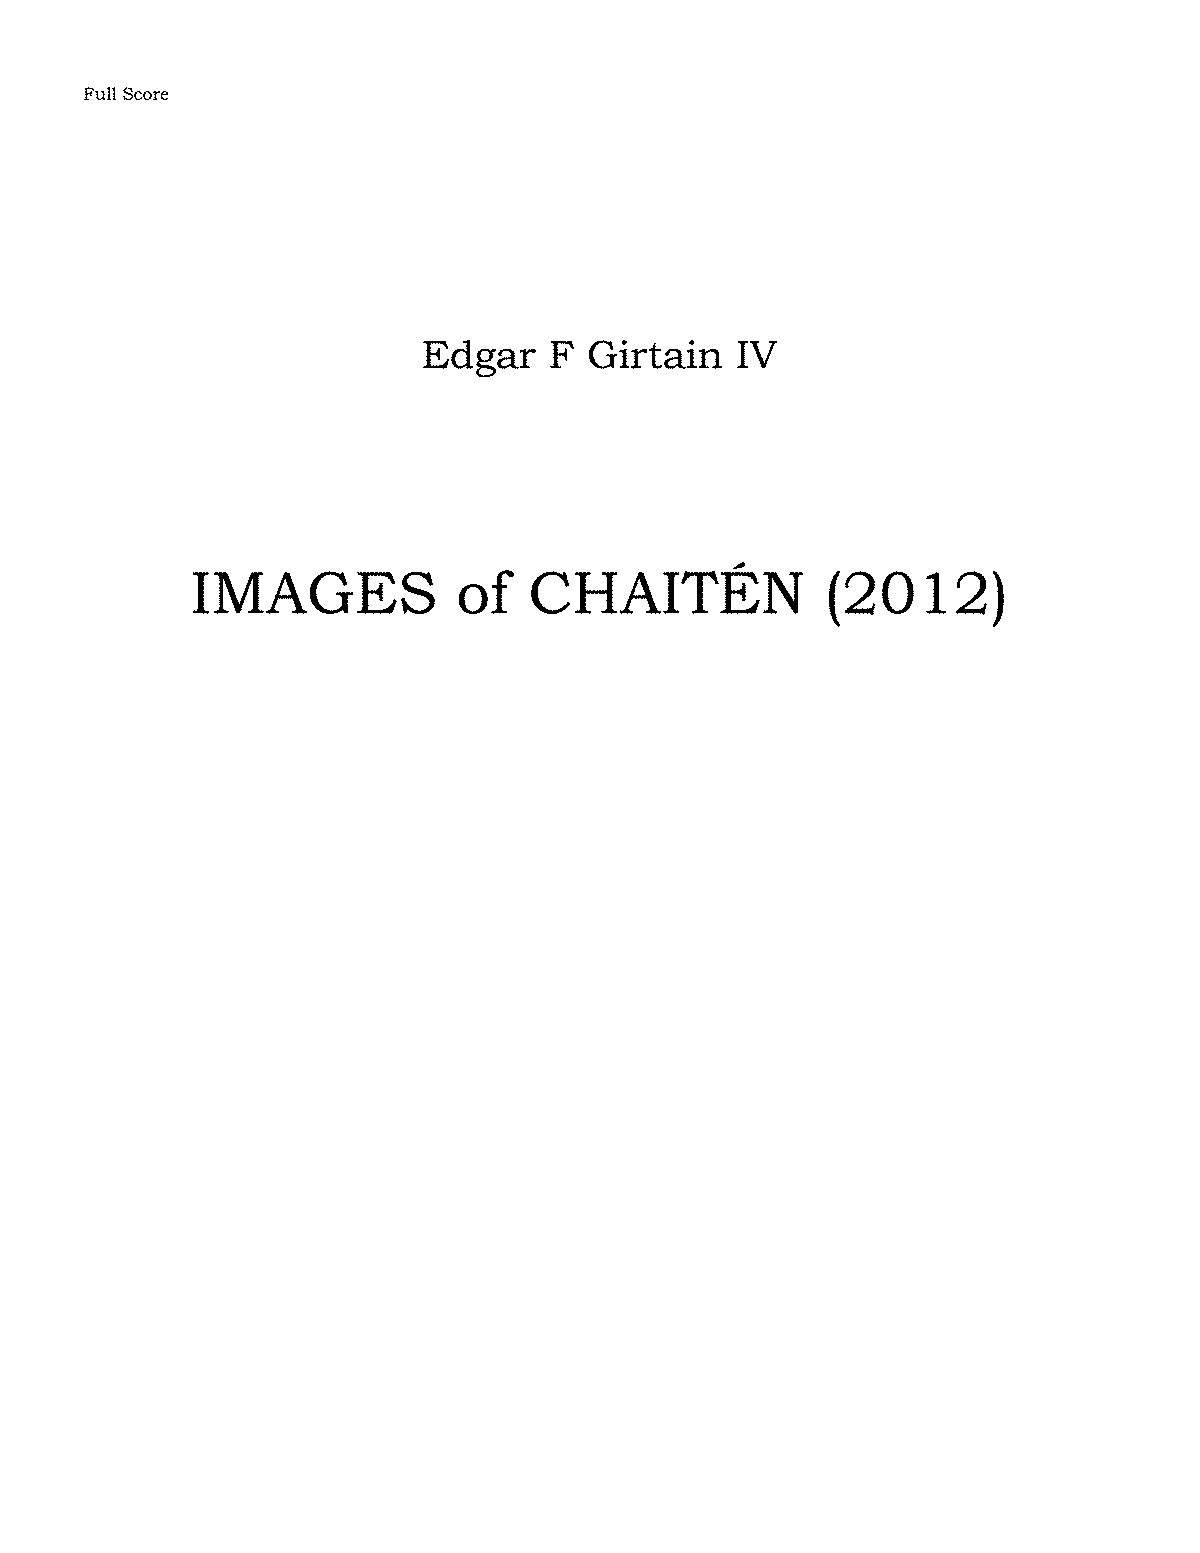 PMLP413828-Images of Chaiten Score.pdf